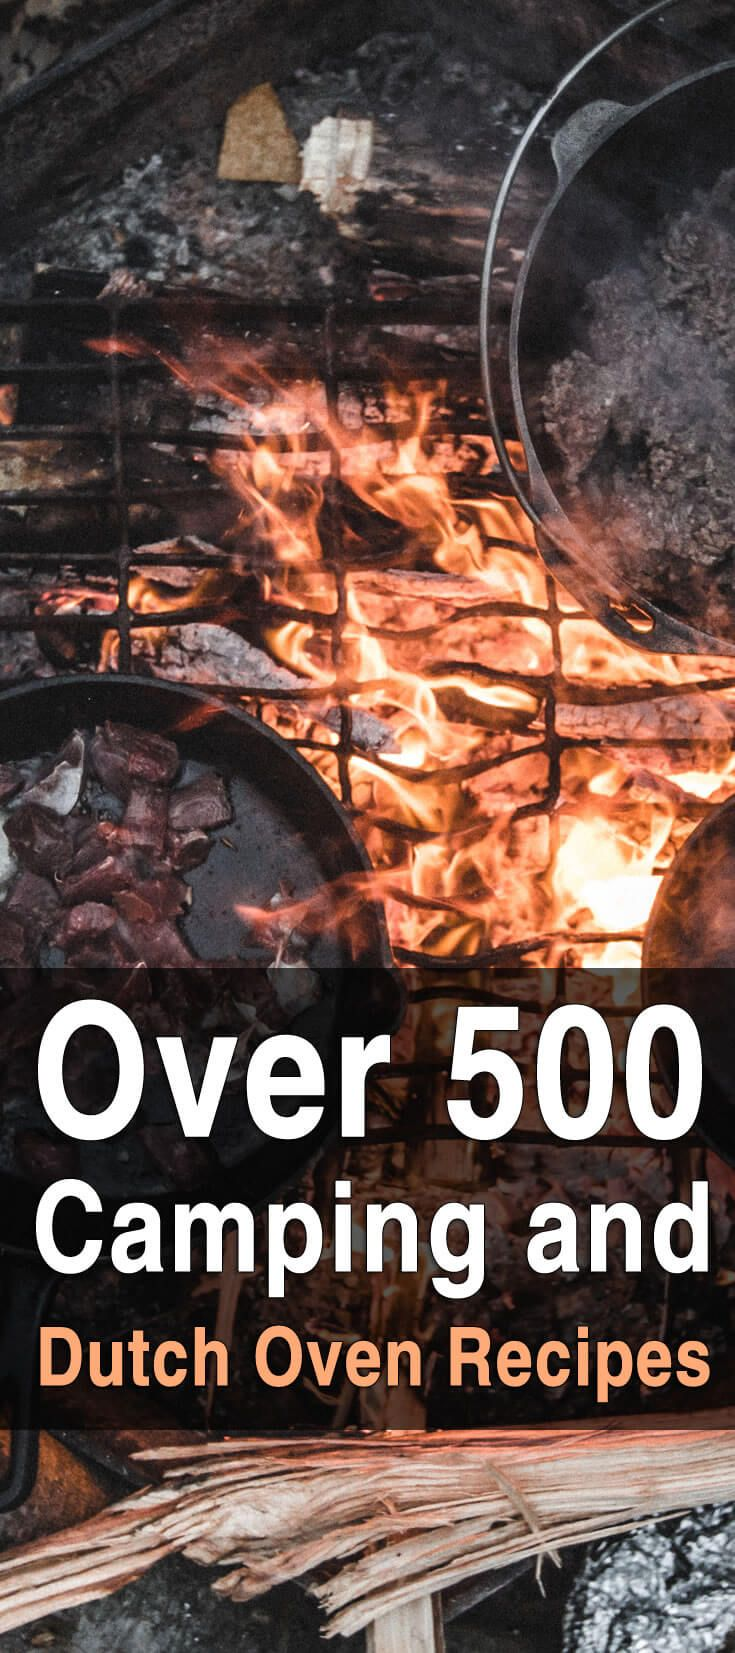 Over 500 Camping and Dutch Oven Recipes #thegreatoutdoors